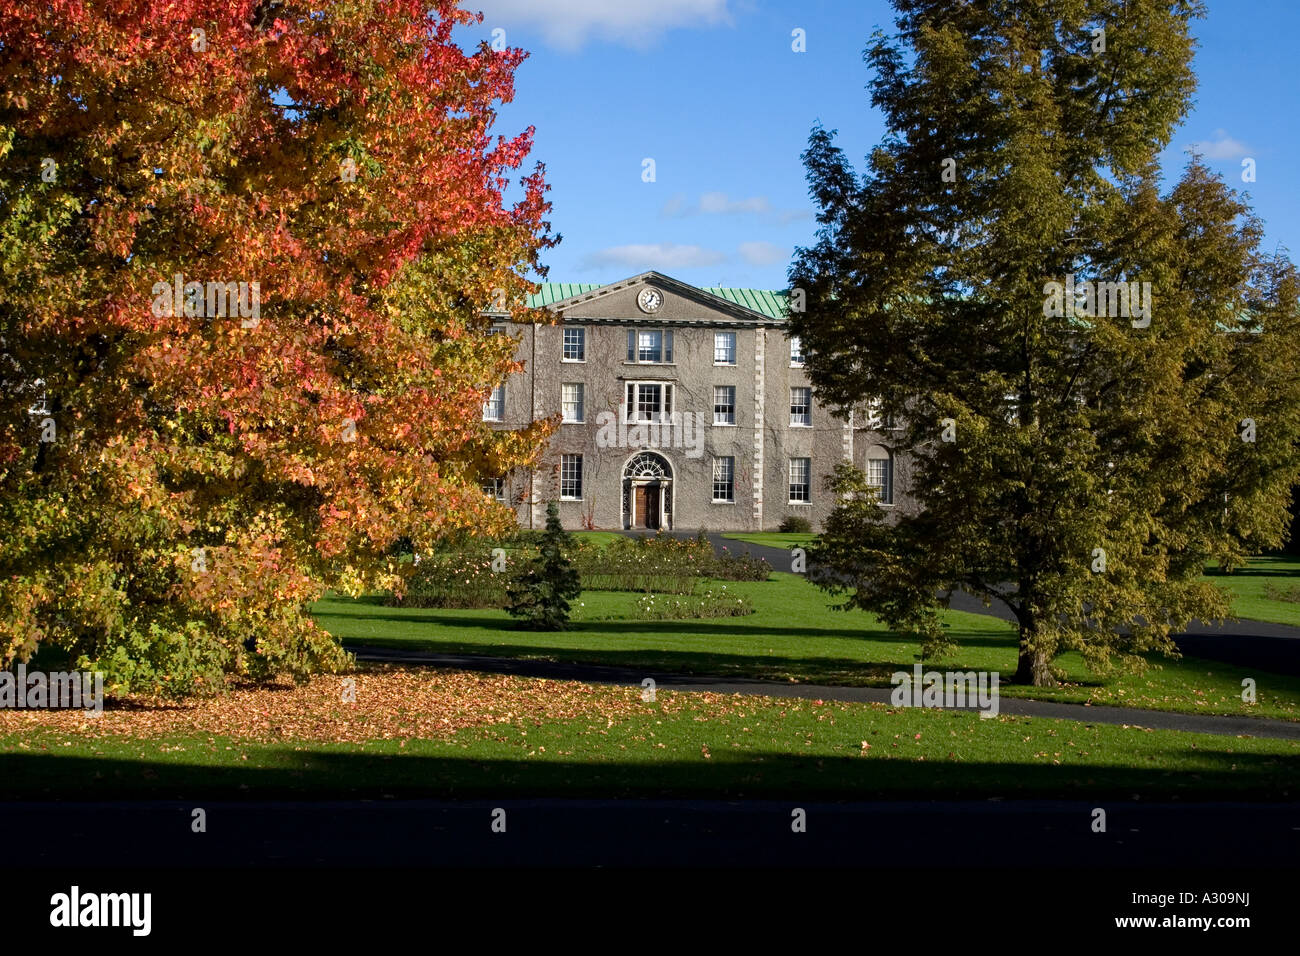 Exterior of maynooth college seen through trees - Stock Image